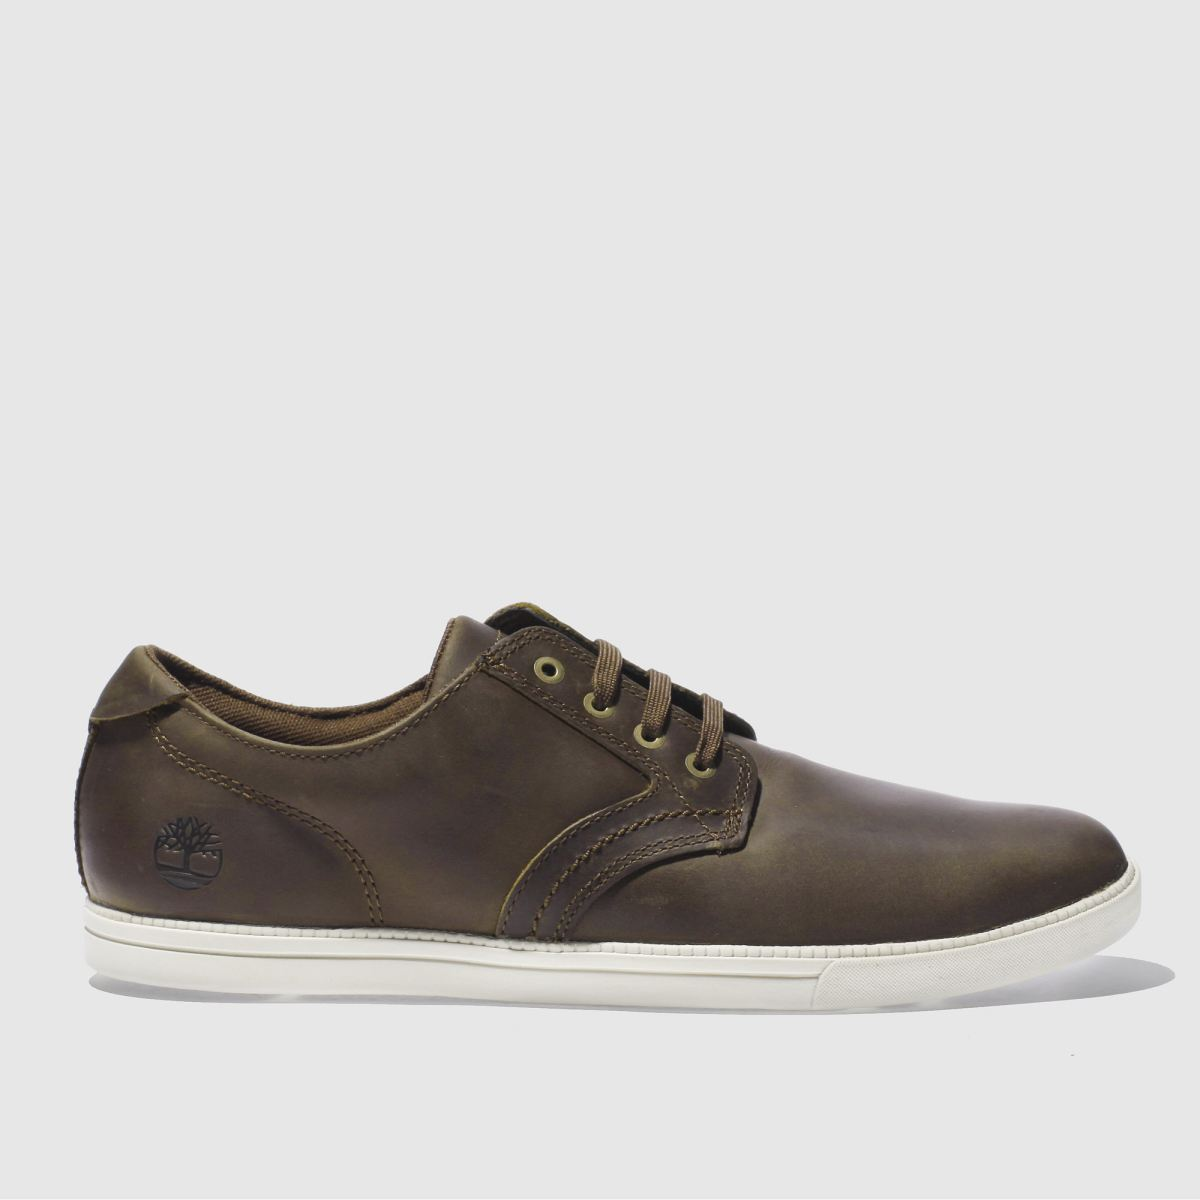 Timberland Brown Fulk Lp Oxford Shoes